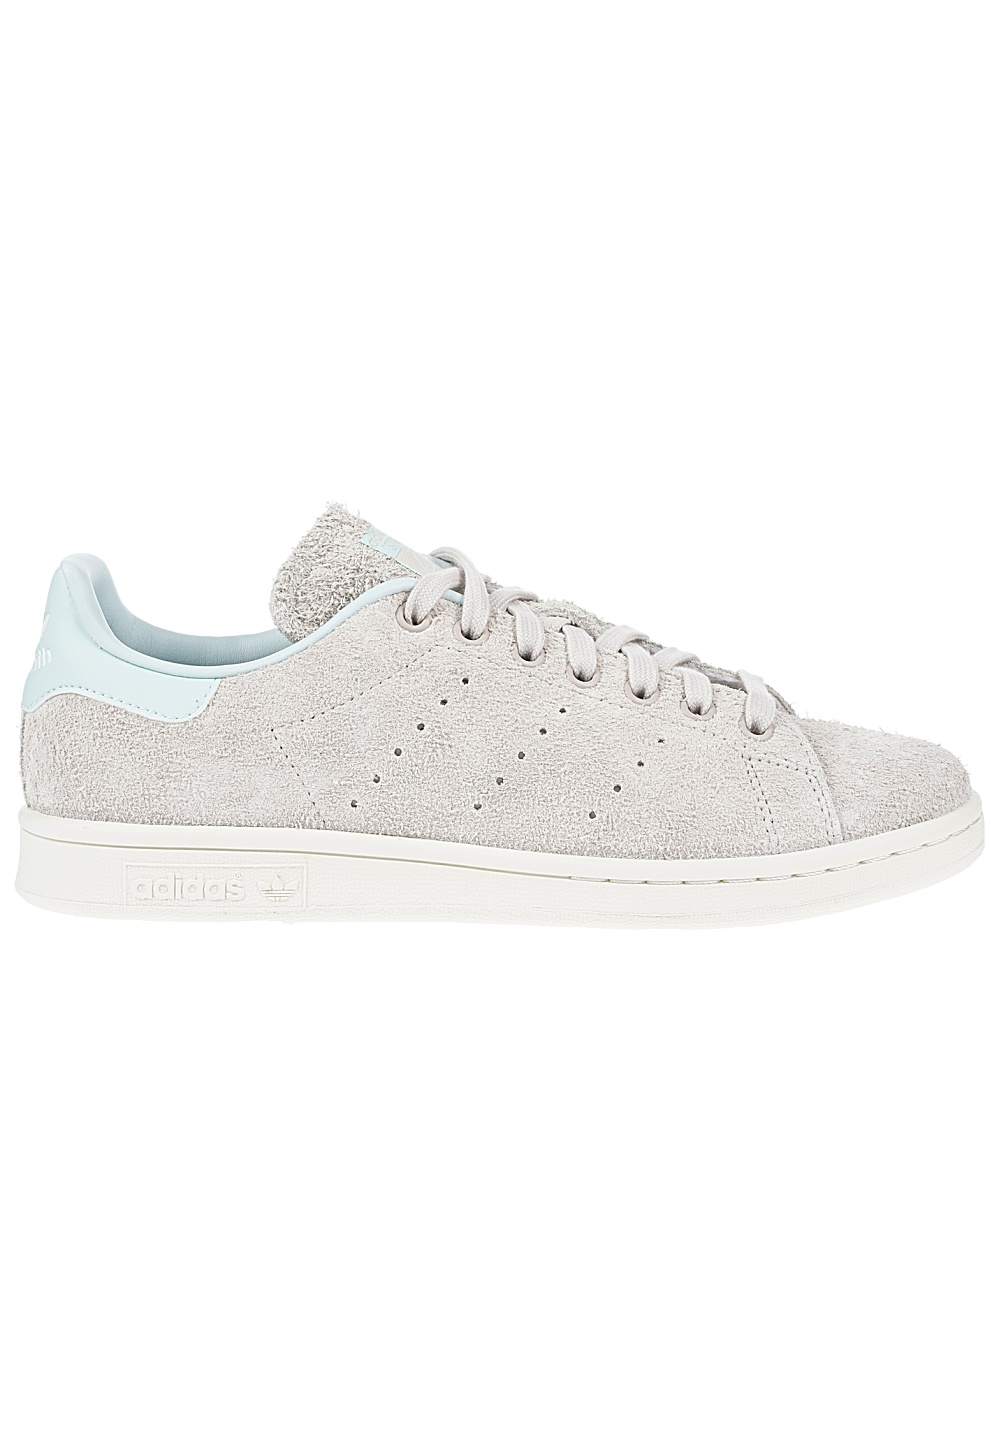 adidas stan smith w baskets pour femme beige planet. Black Bedroom Furniture Sets. Home Design Ideas